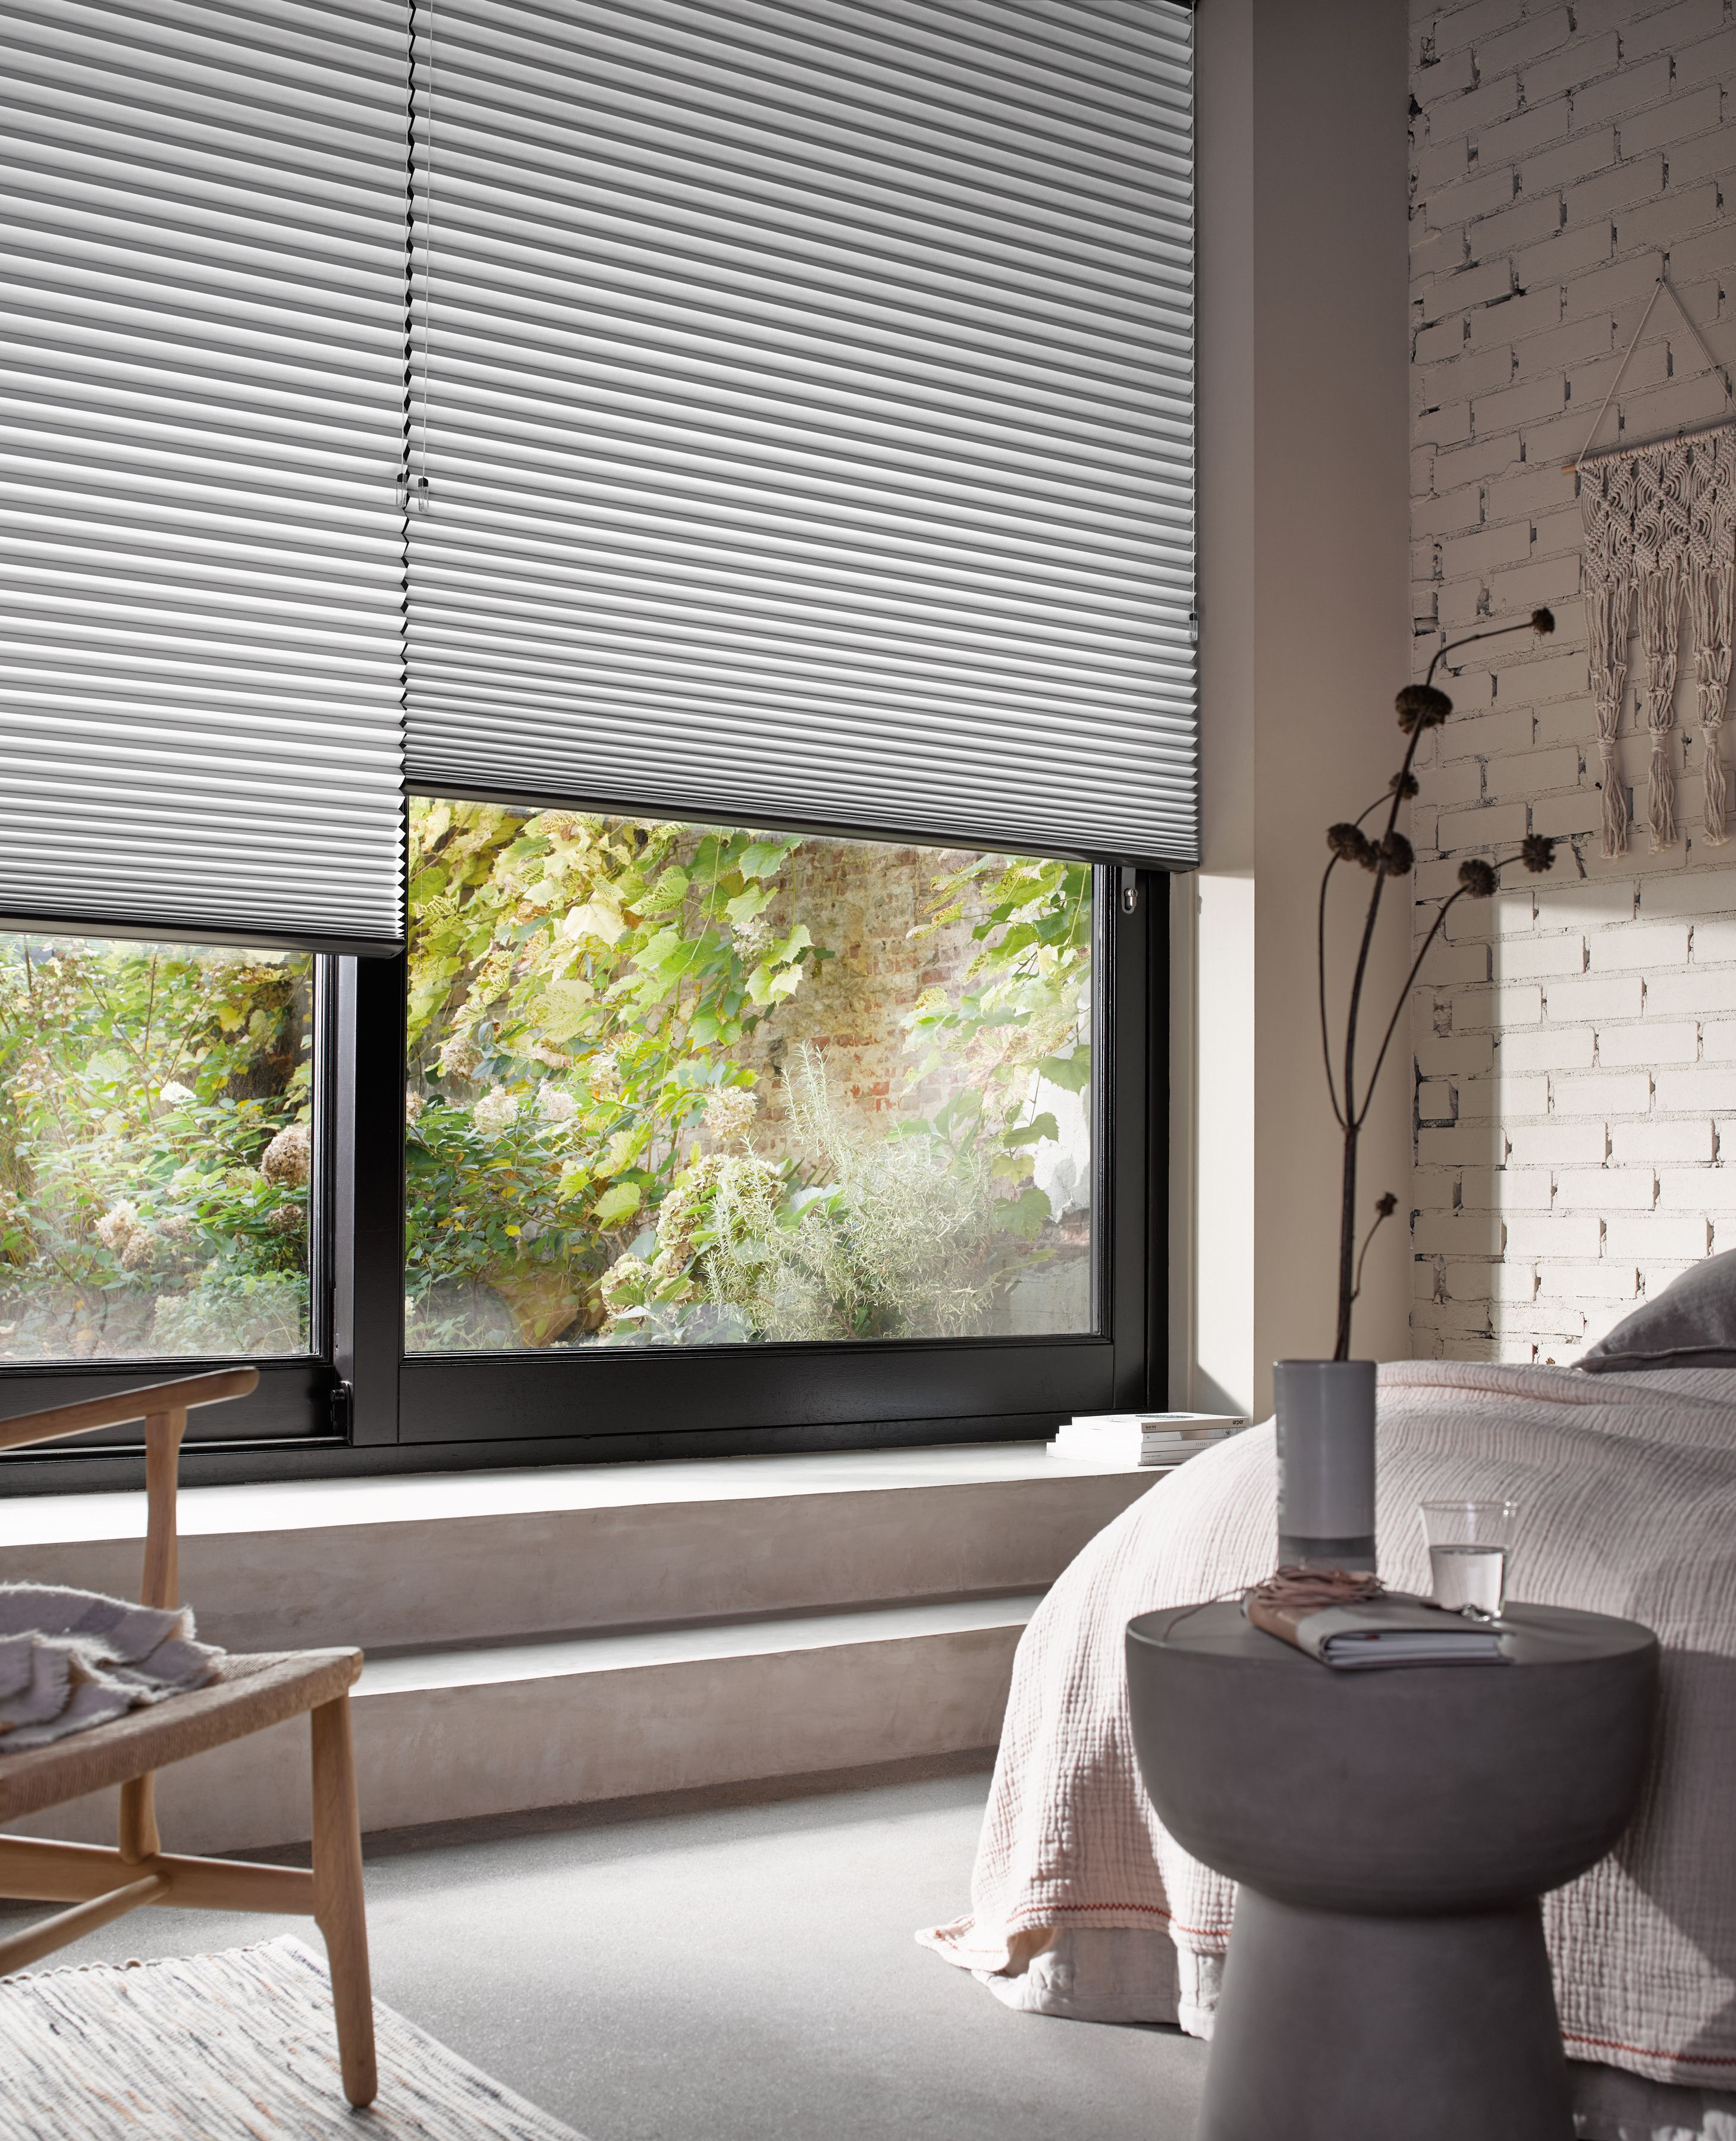 Duette blinds for privacy bedroom grey calm window